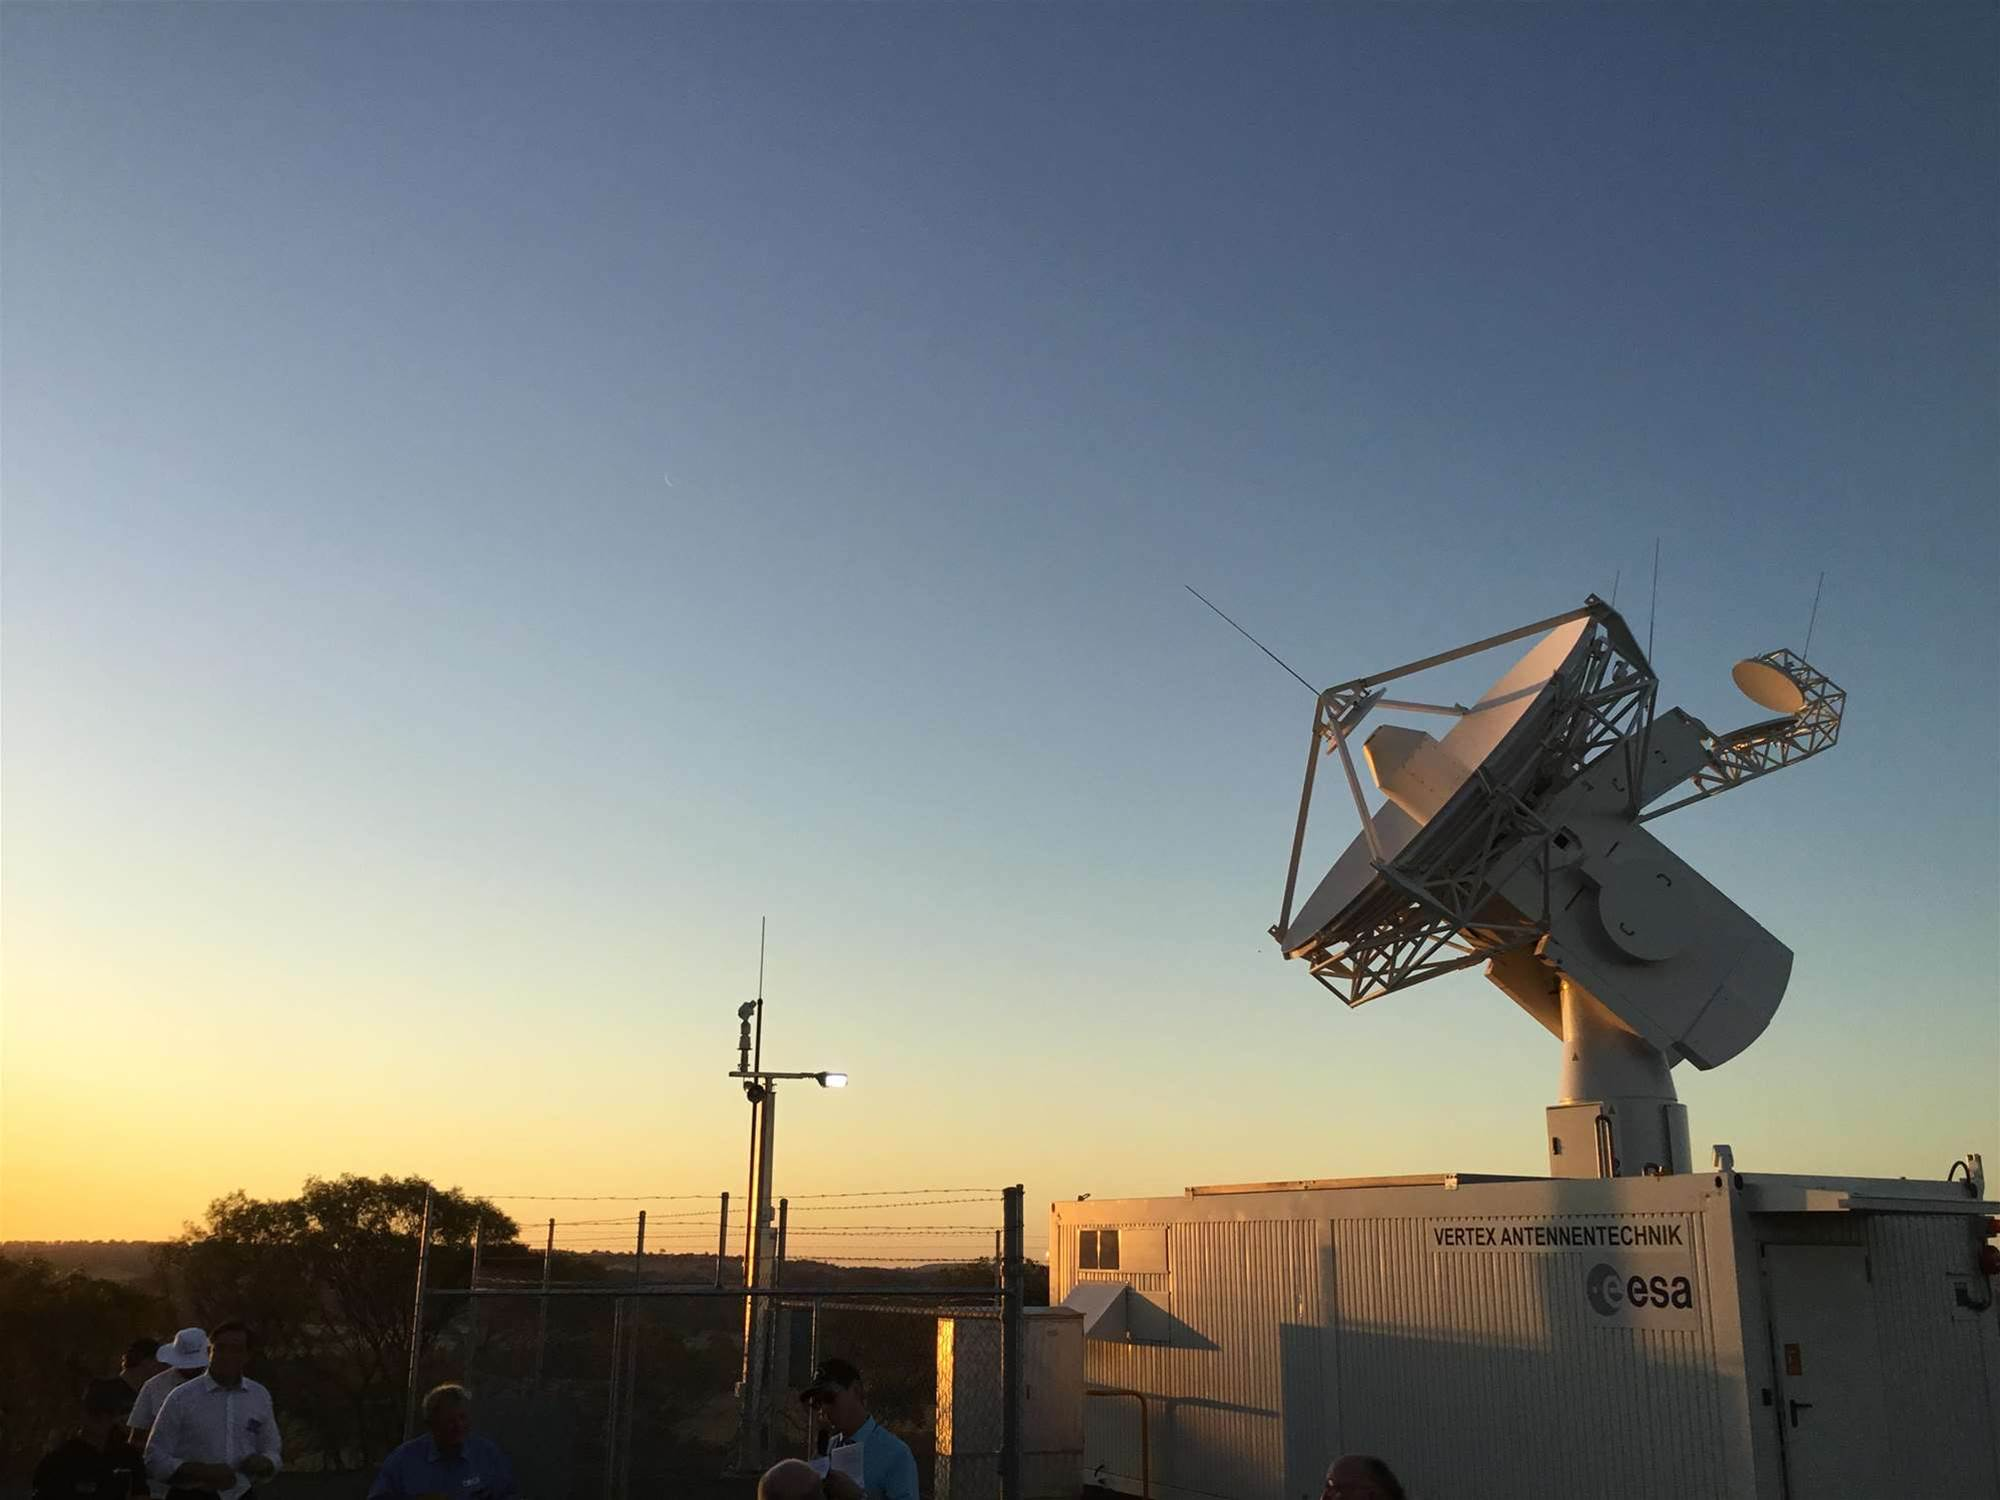 European satellite tracking dish ready for service in WA